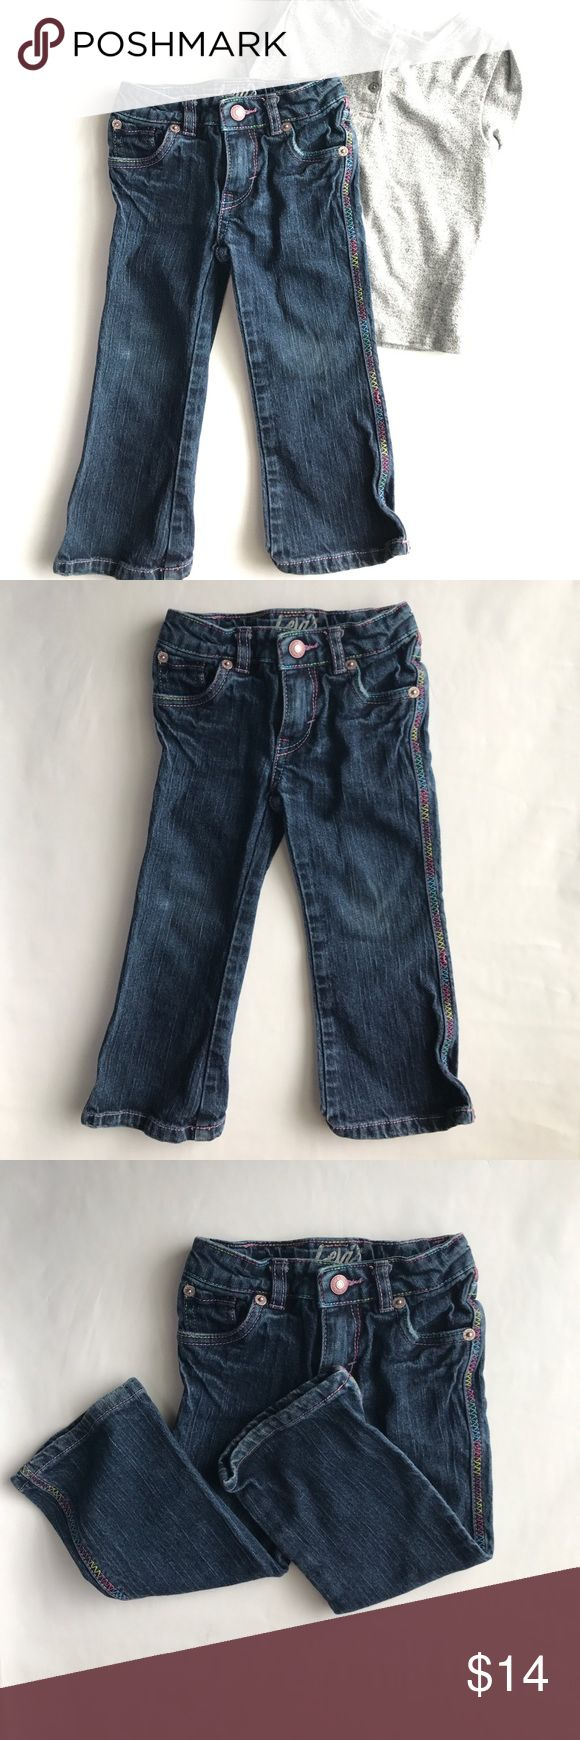 Color me happy ☆ Levi's 👖 Levi's Jeans | Size: 2T with adjustable waist | Blue jeans with multicolored lined stitching | EUC Levi's Bottoms Jeans